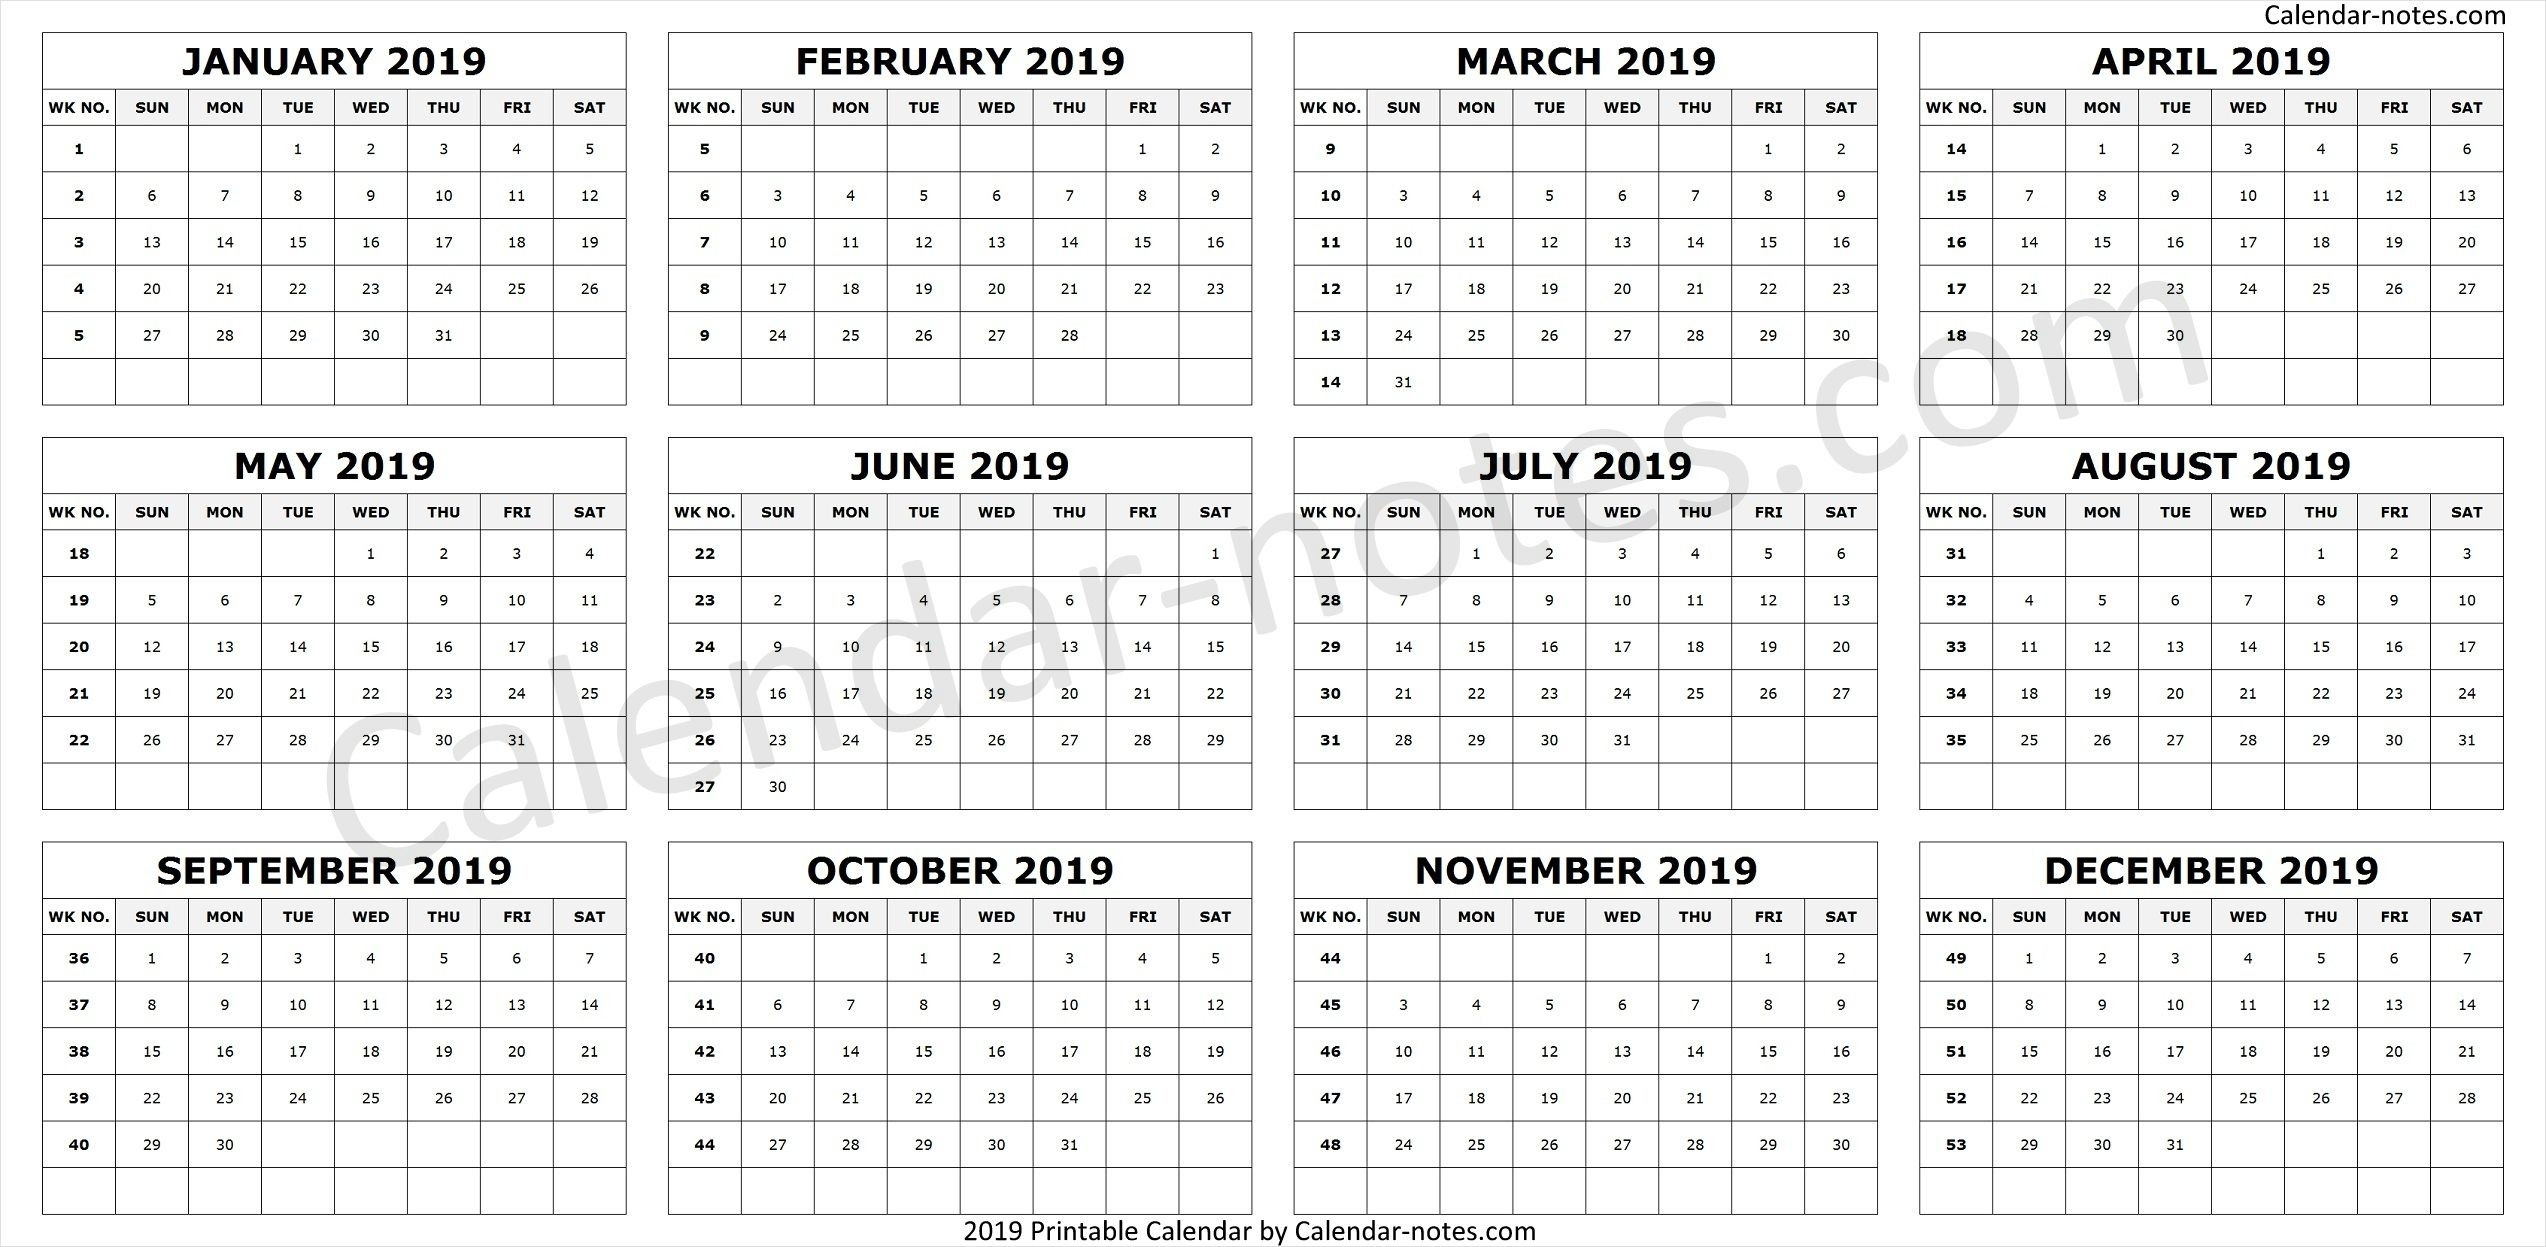 Online Calendar With Week Numbers 2019 | Free Printable Calendar